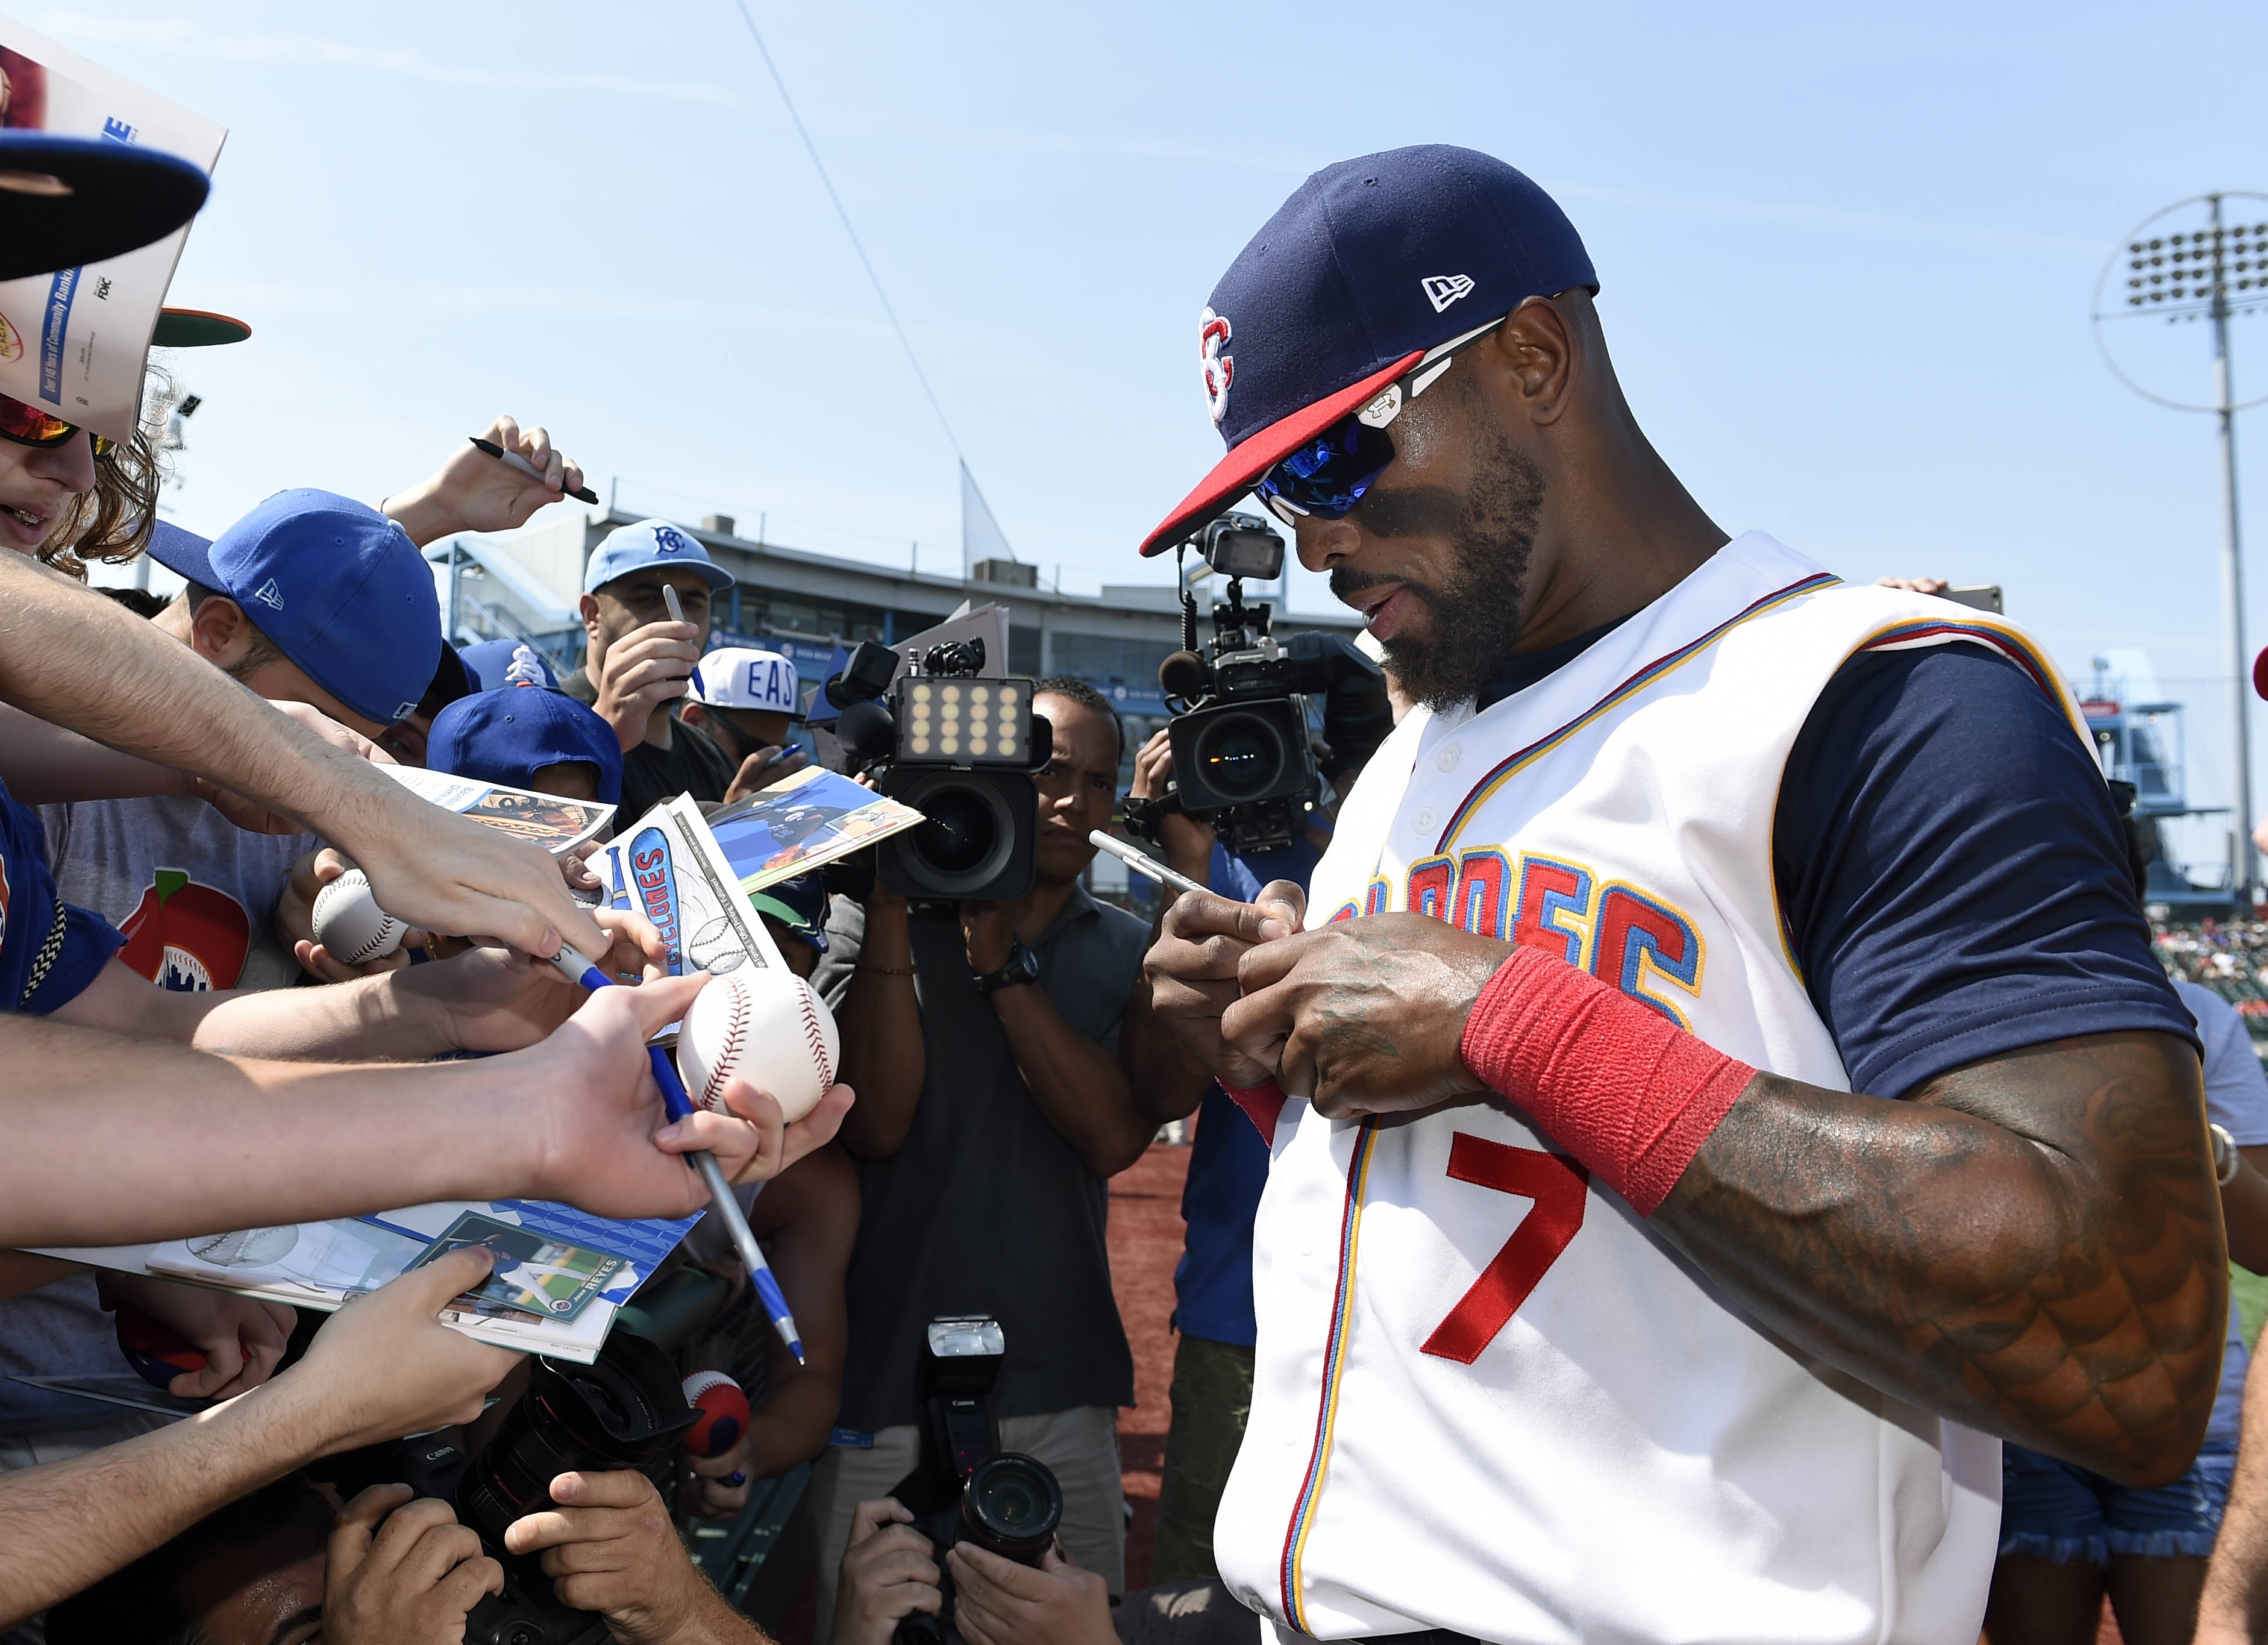 Jose Reyes, who agreed to a Minor League contract with the New York Mets, signs autographs Sunday after joining the team's affiliated Brooklyn Cyclones. The Cyclones' games are being reported by AP in an expansion of Minor League coverage. (AP Photo/Kathy Kmonicek)